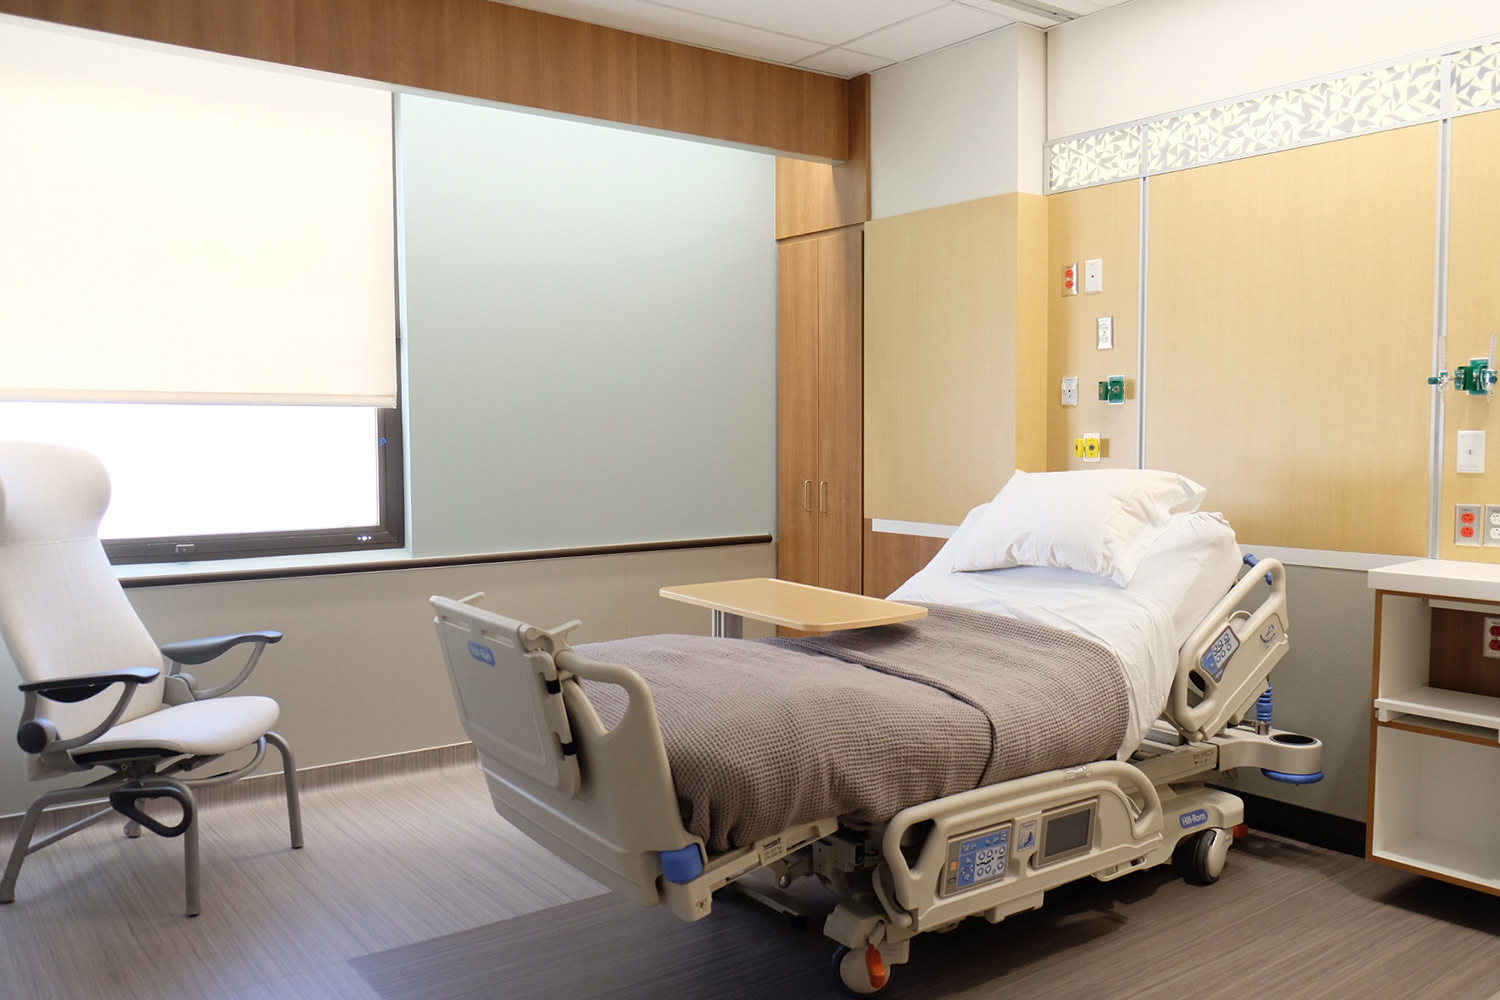 University of Utah Patient Room of the future actual finished project